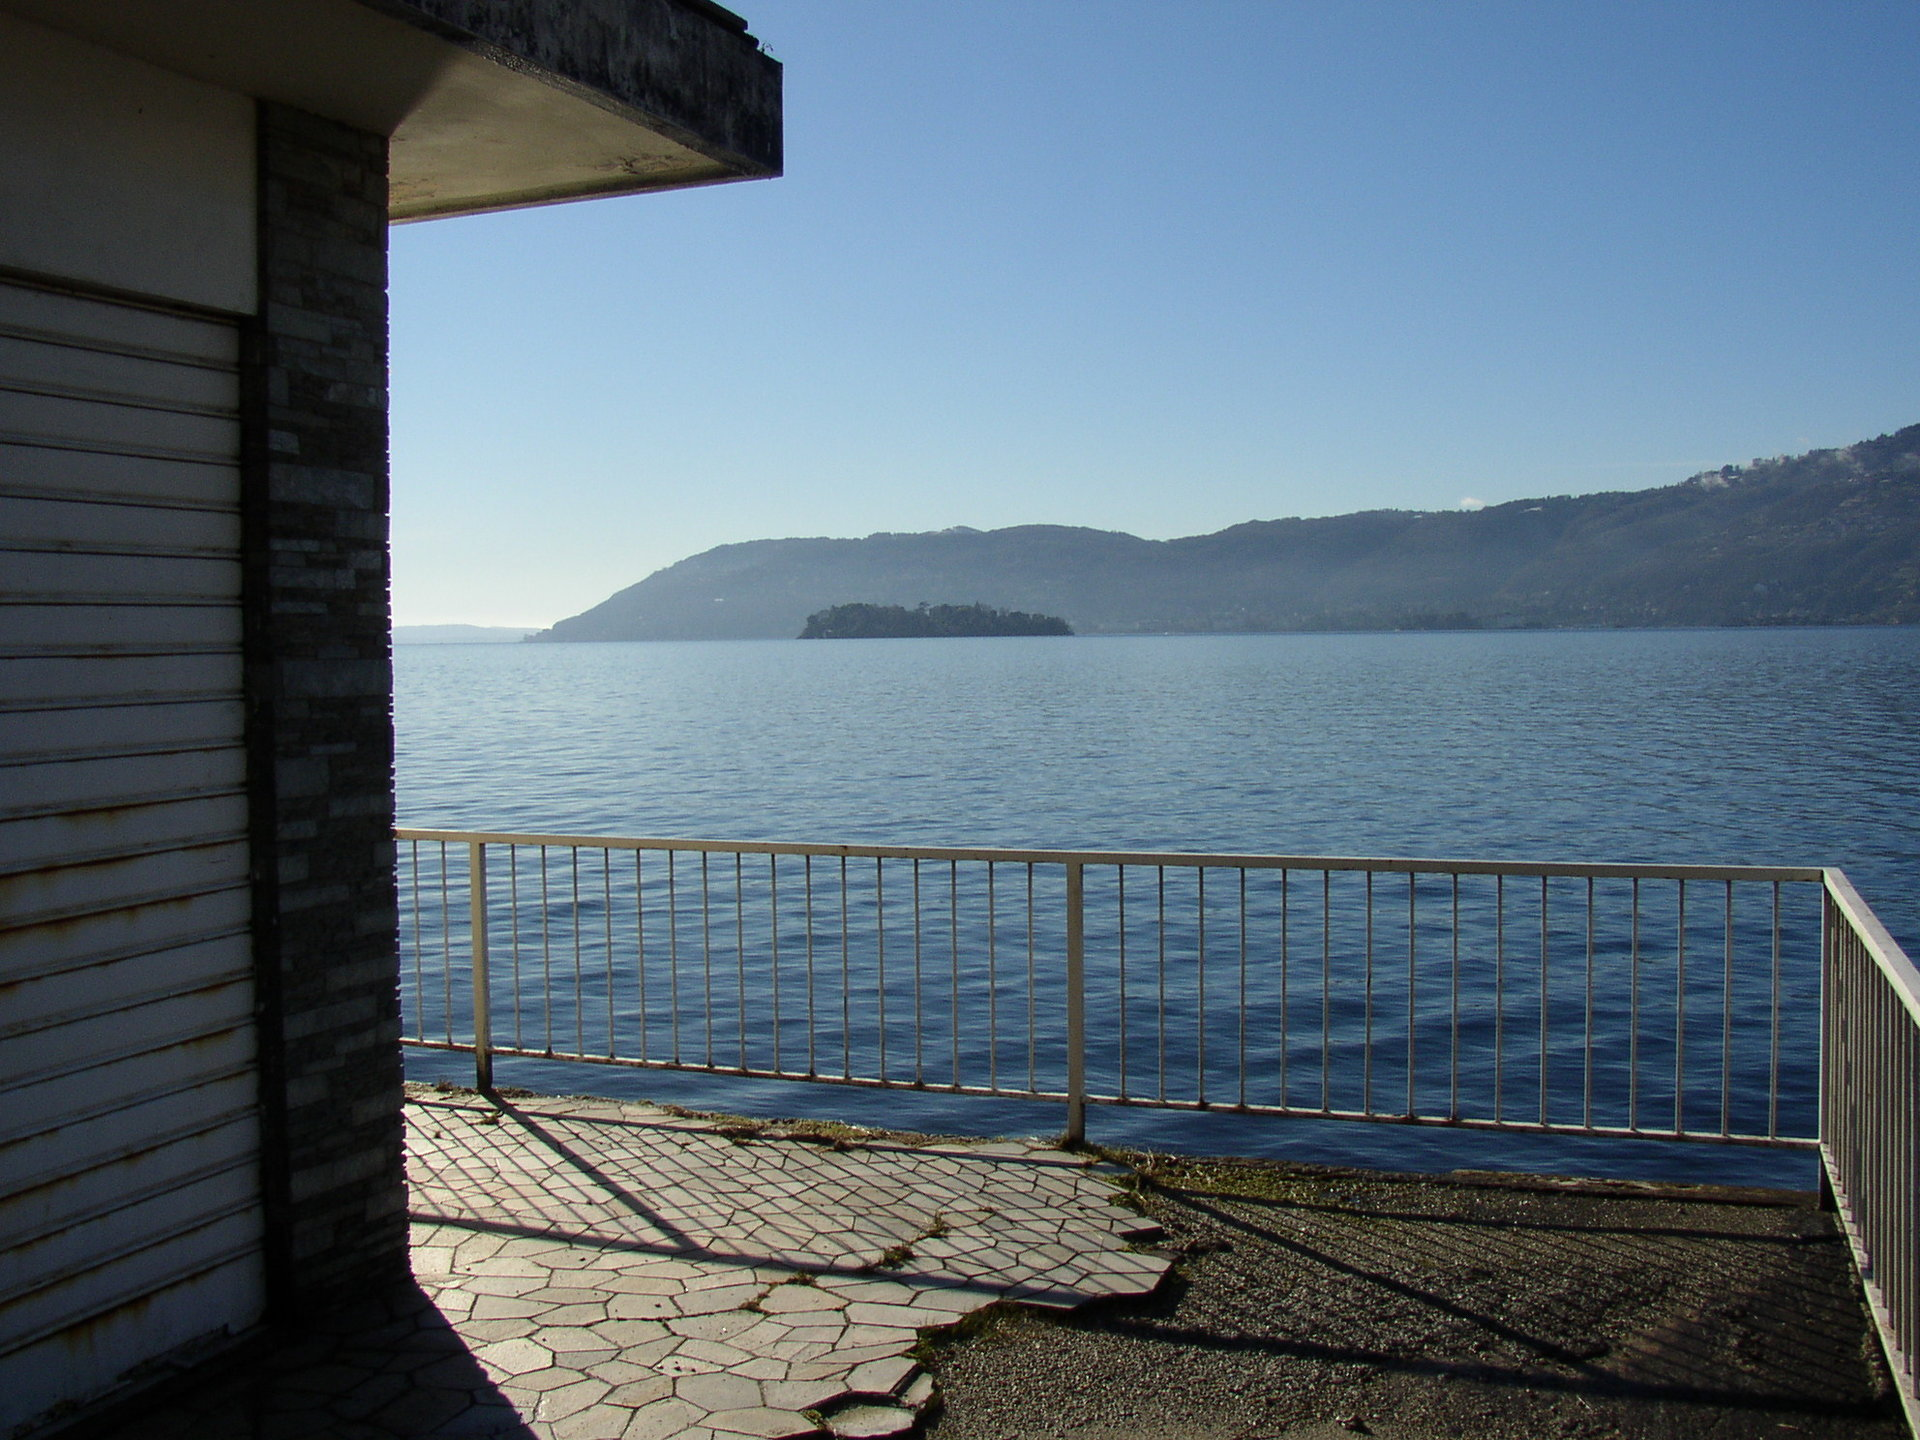 Exclusive modern villa for sale in Verbania - lake view terrace